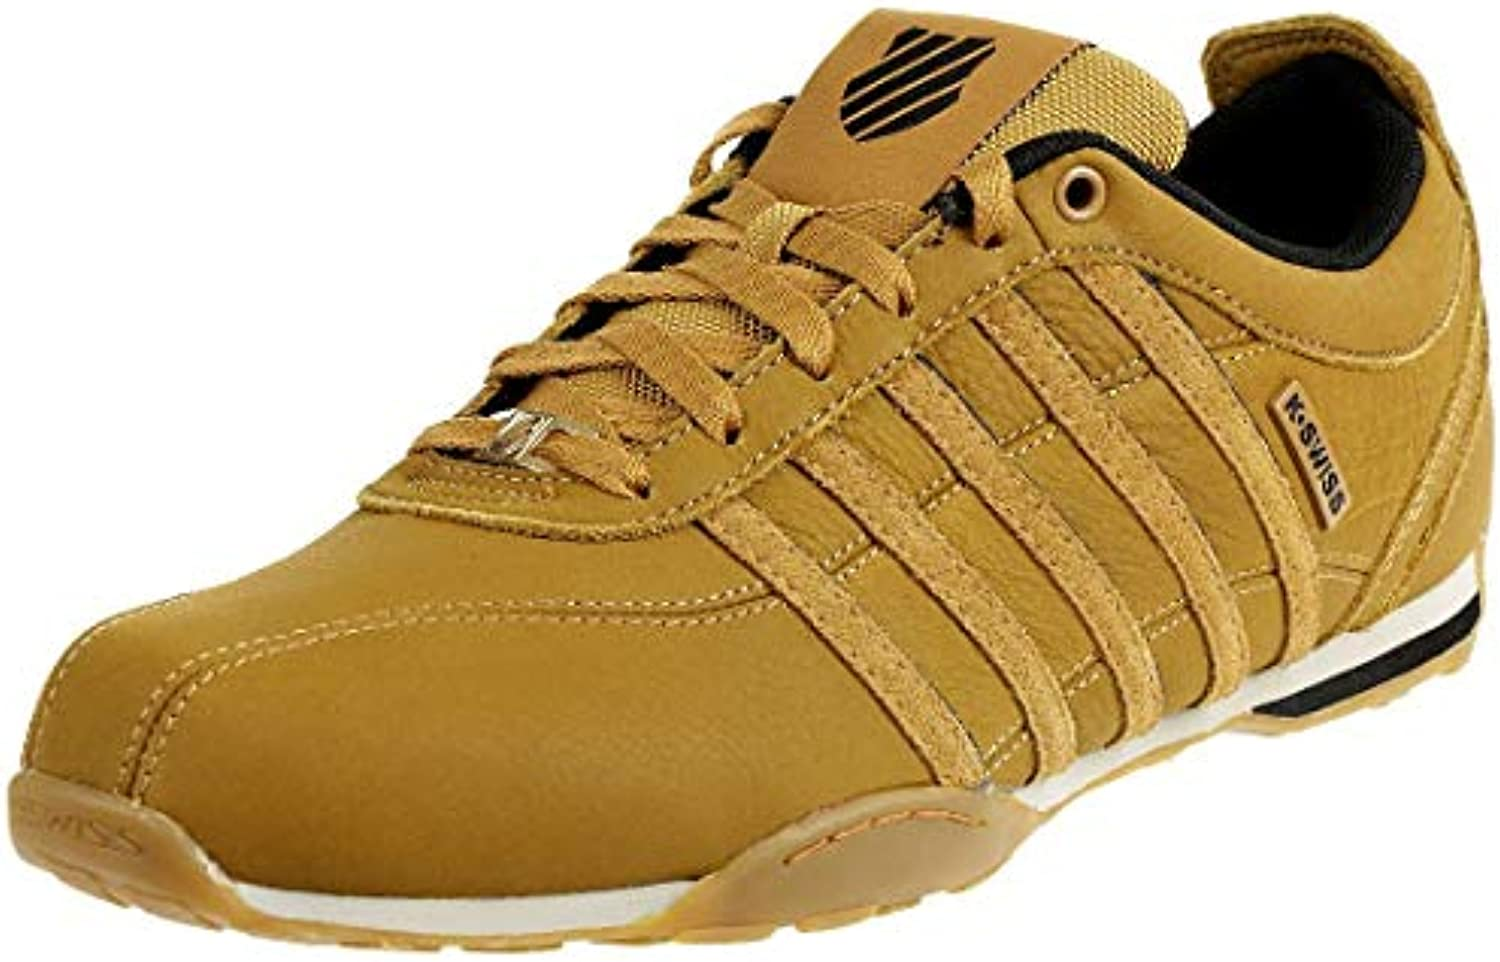 KSWISS Arvee 1.5, 1.5, 1.5, Baskets mode homme 72d3c3